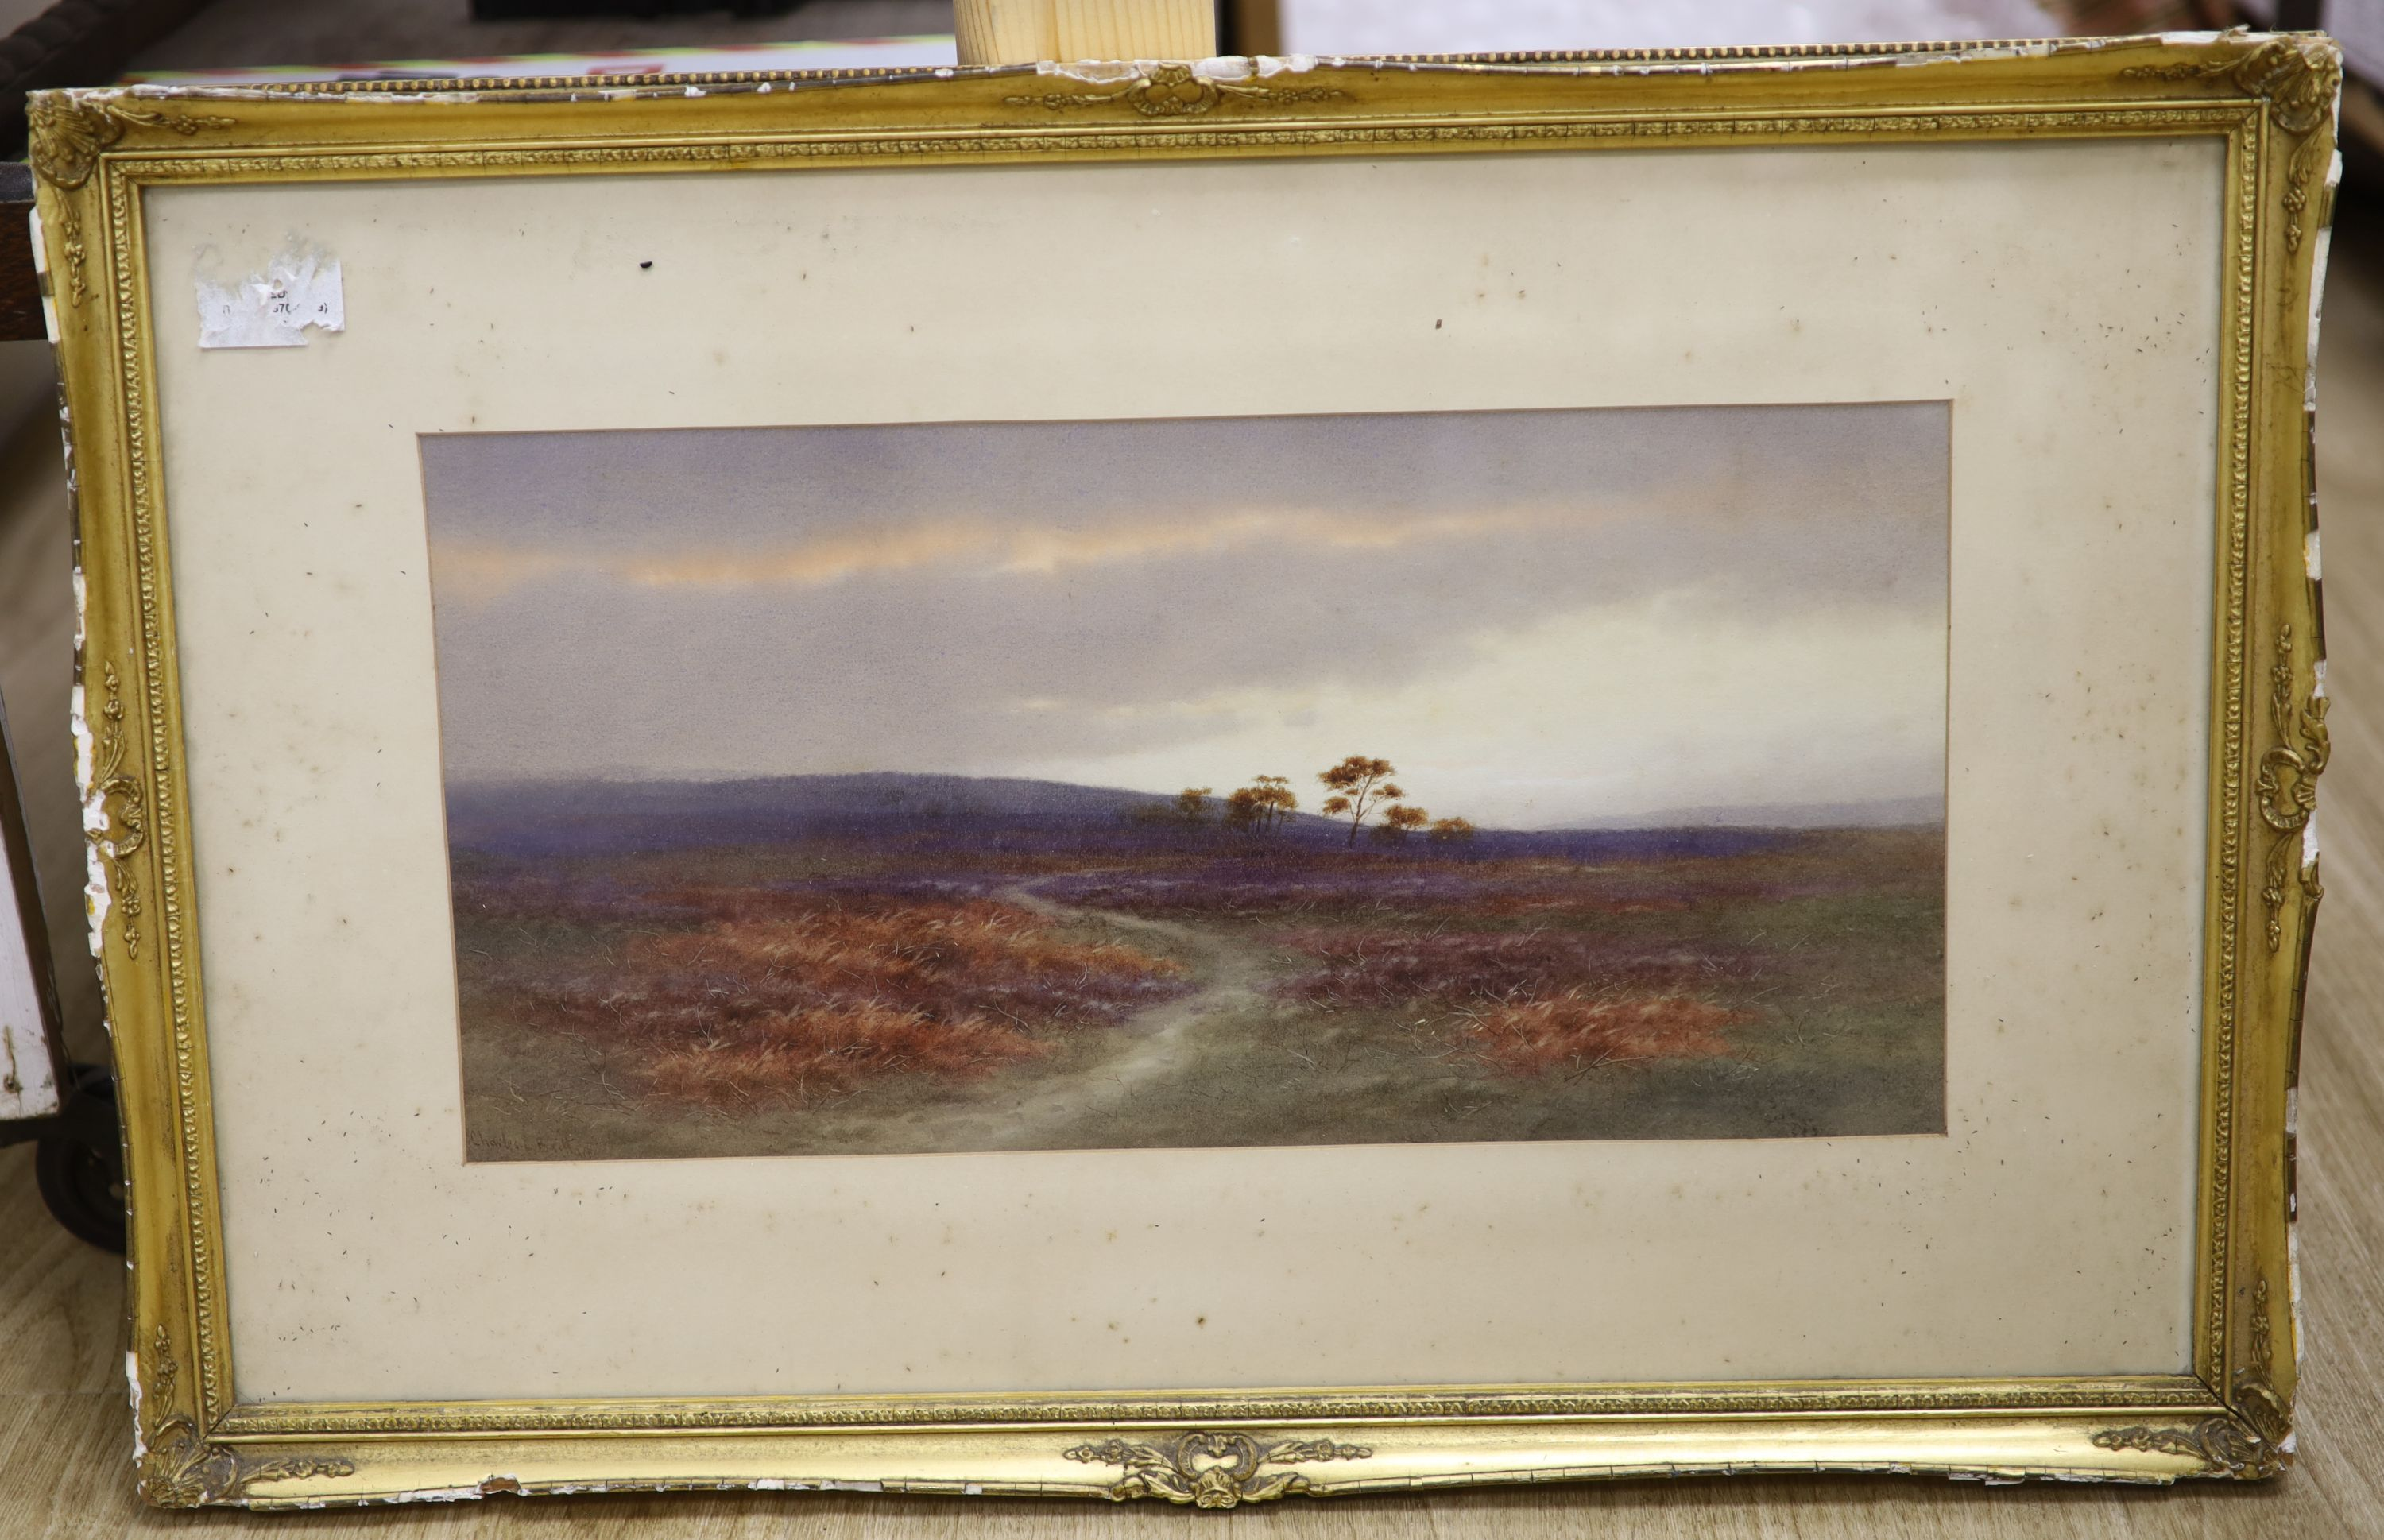 Charles Edward Brittan (1870-1949), watercolour, Moorland scene, 20 x 40cm signed, 7.75 x 15.75in. - Image 2 of 3